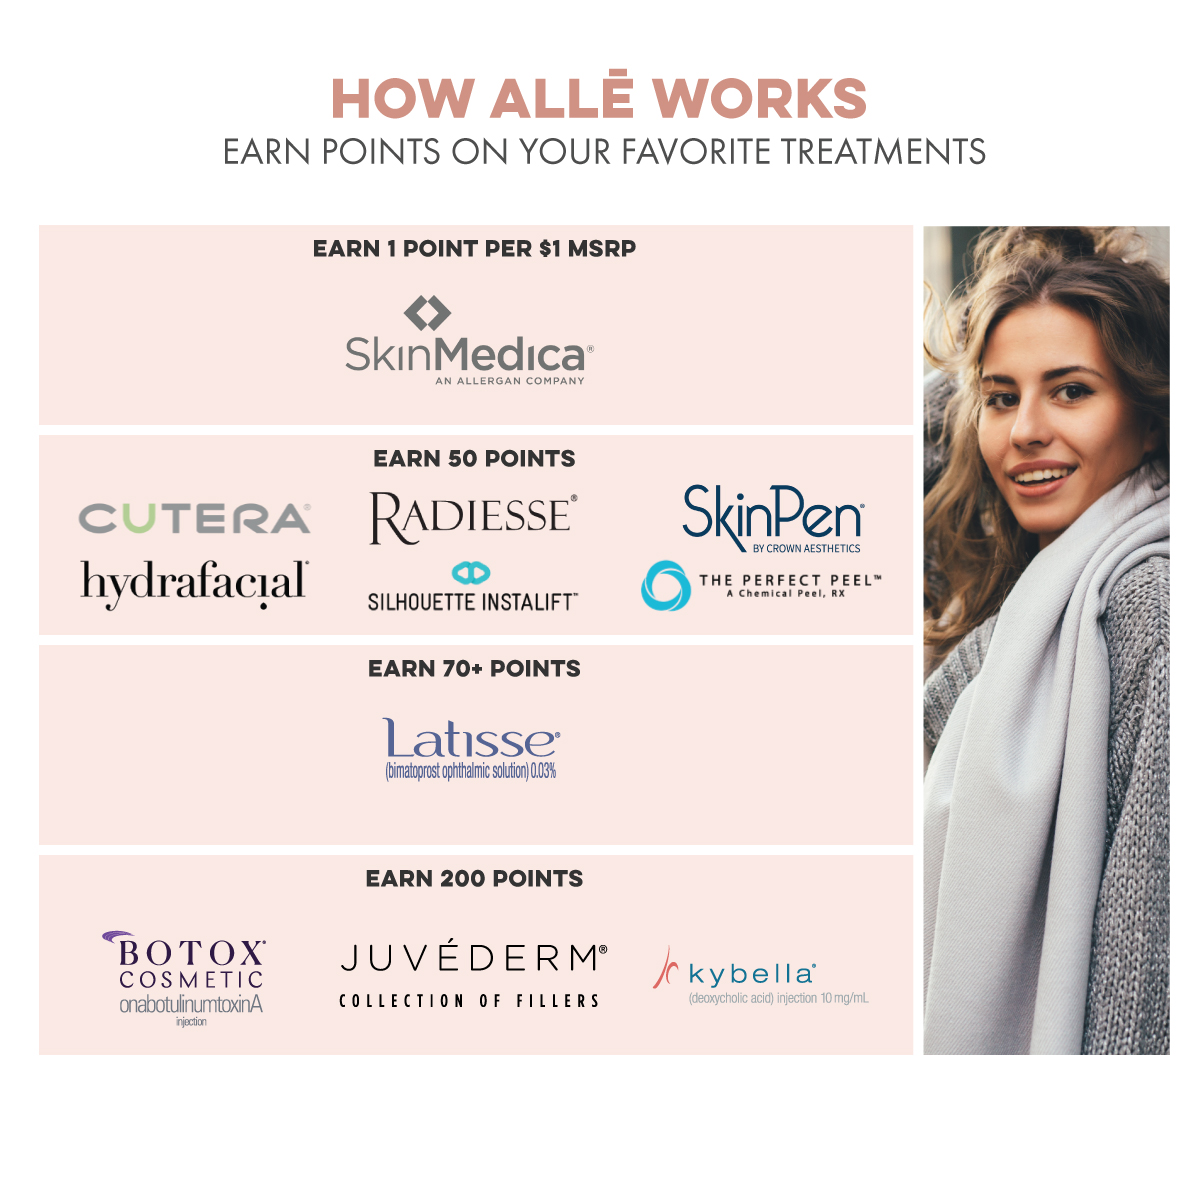 How Alle Works - Earn Points On Your Favorite Treatments | Concierge Aesthetics - Irvine (Orange County)